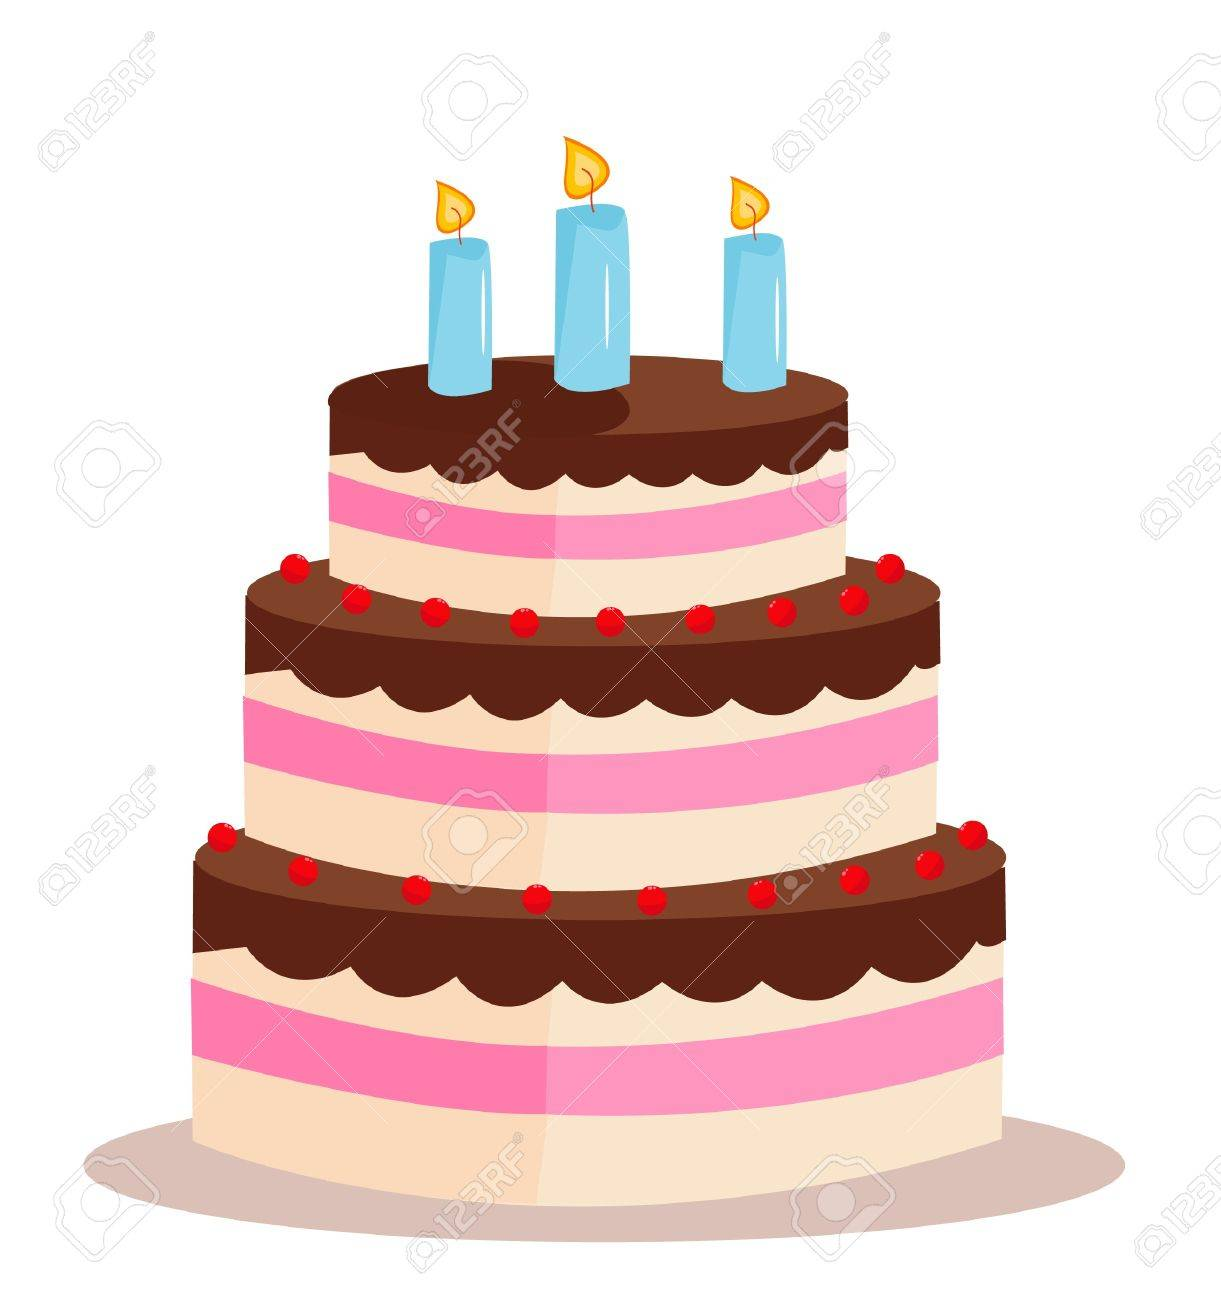 Sweet cake for birthday holiday Stock Vector - 20929199